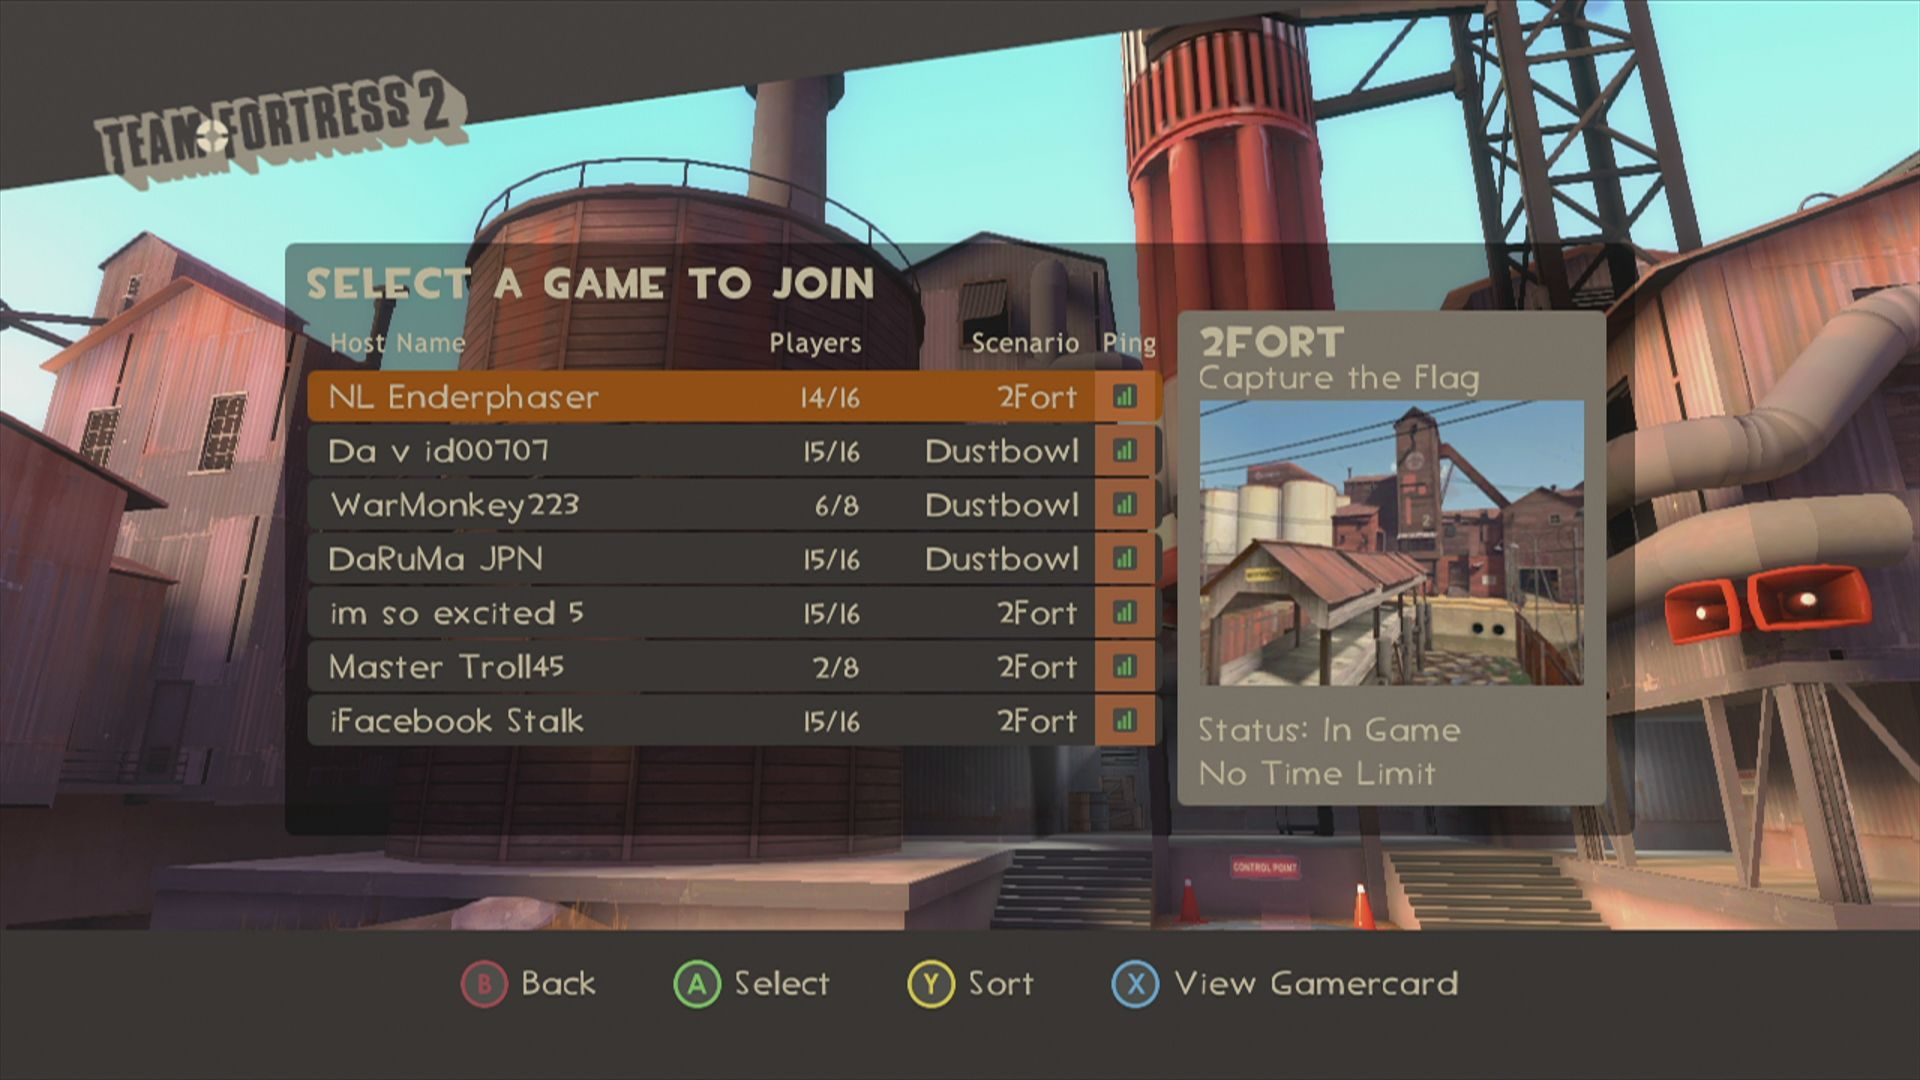 The Orange Box Xbox 360 <i>Team Fortress 2</i>: since <i>Team Fortress</i> is a multiplayer game, you have to select from a list of sessions to join